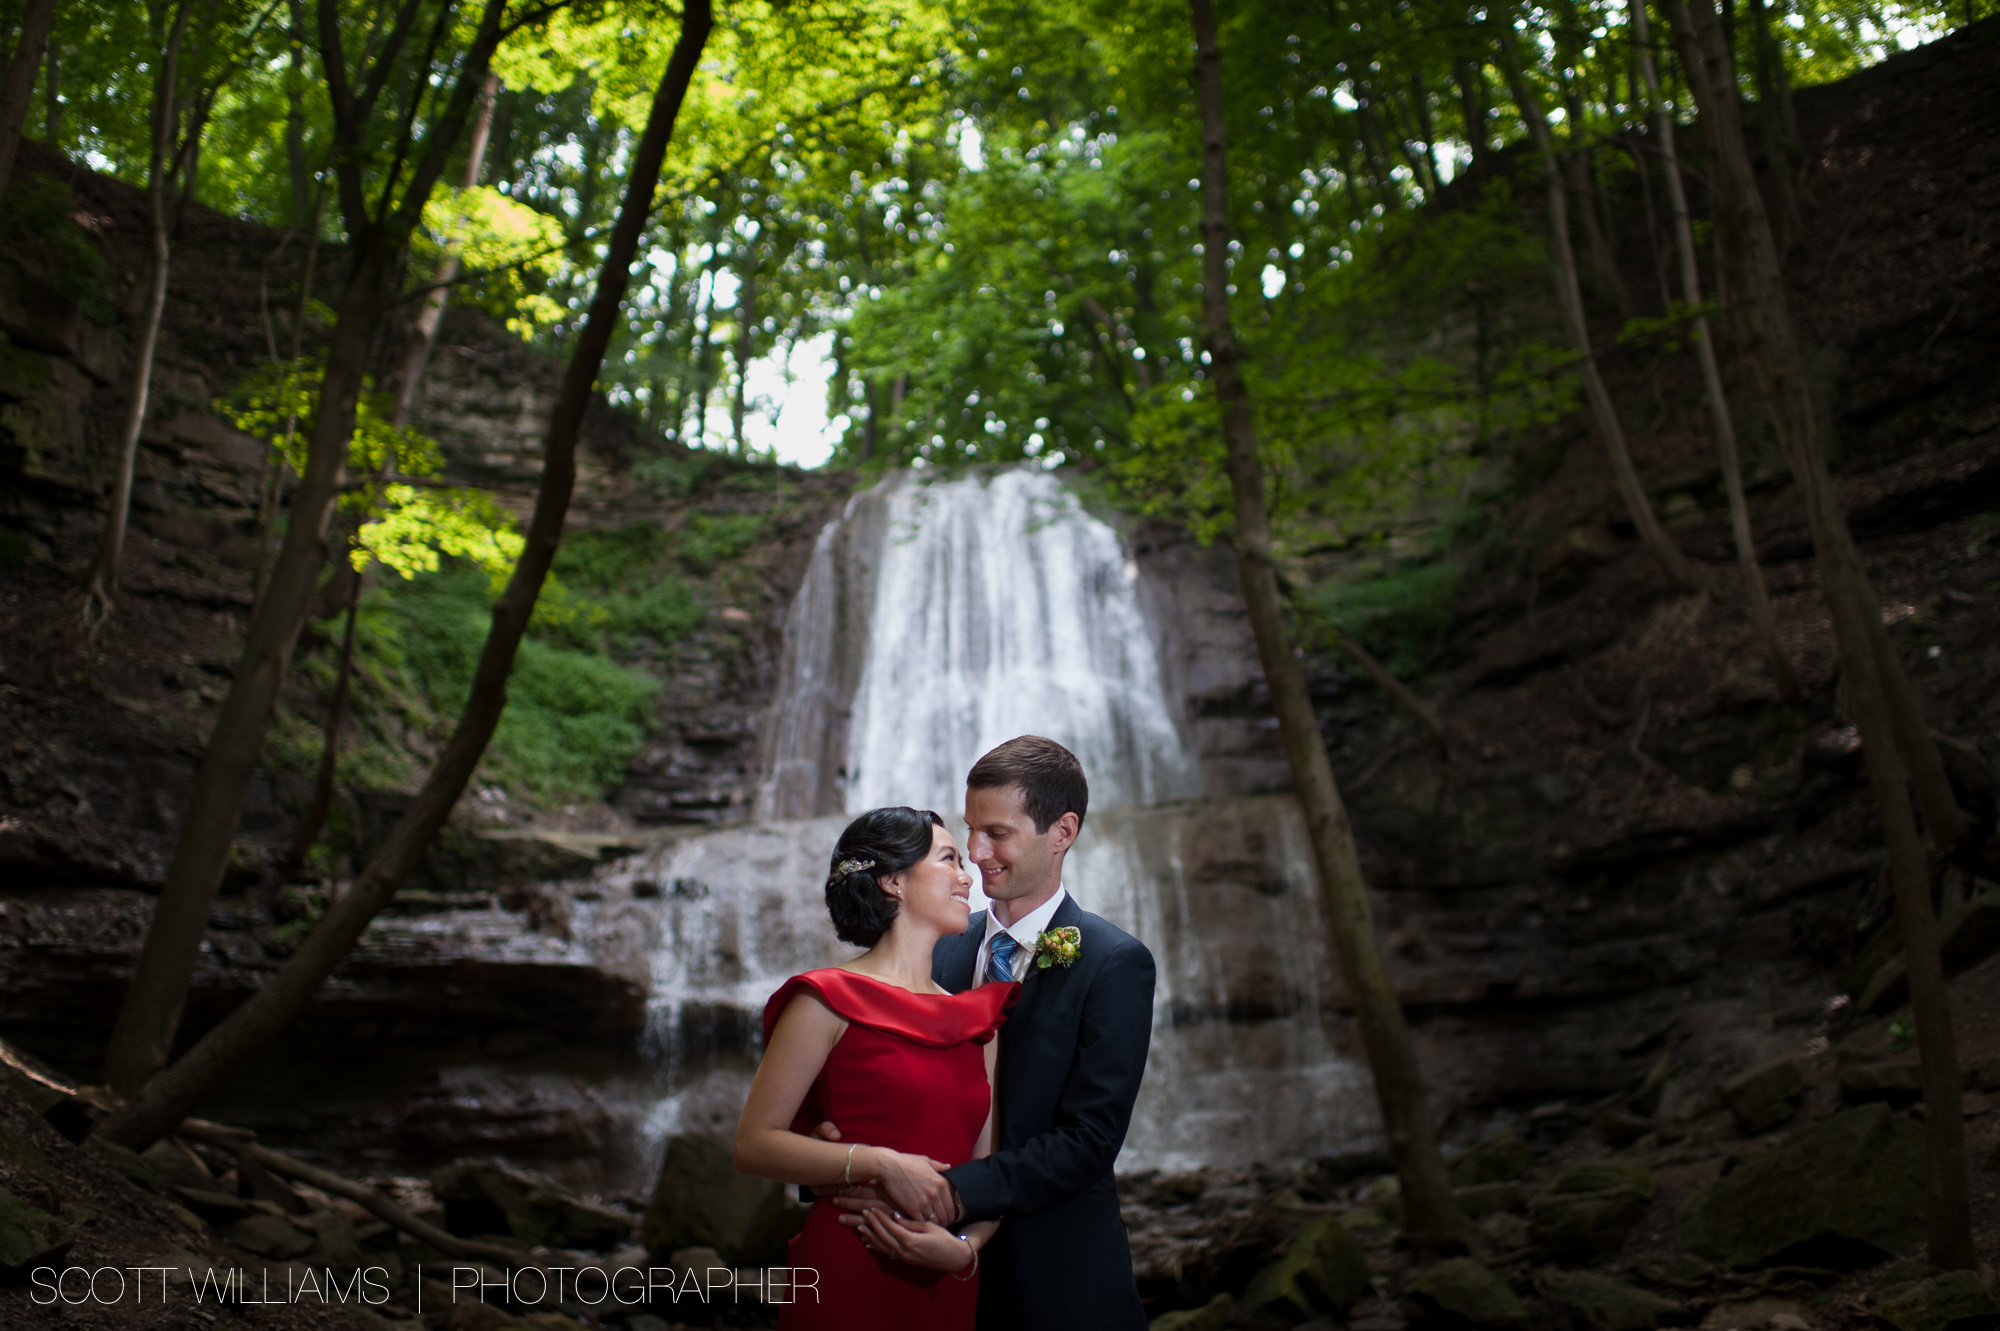 ancaster-mill-wedding-photograph-005.jpg